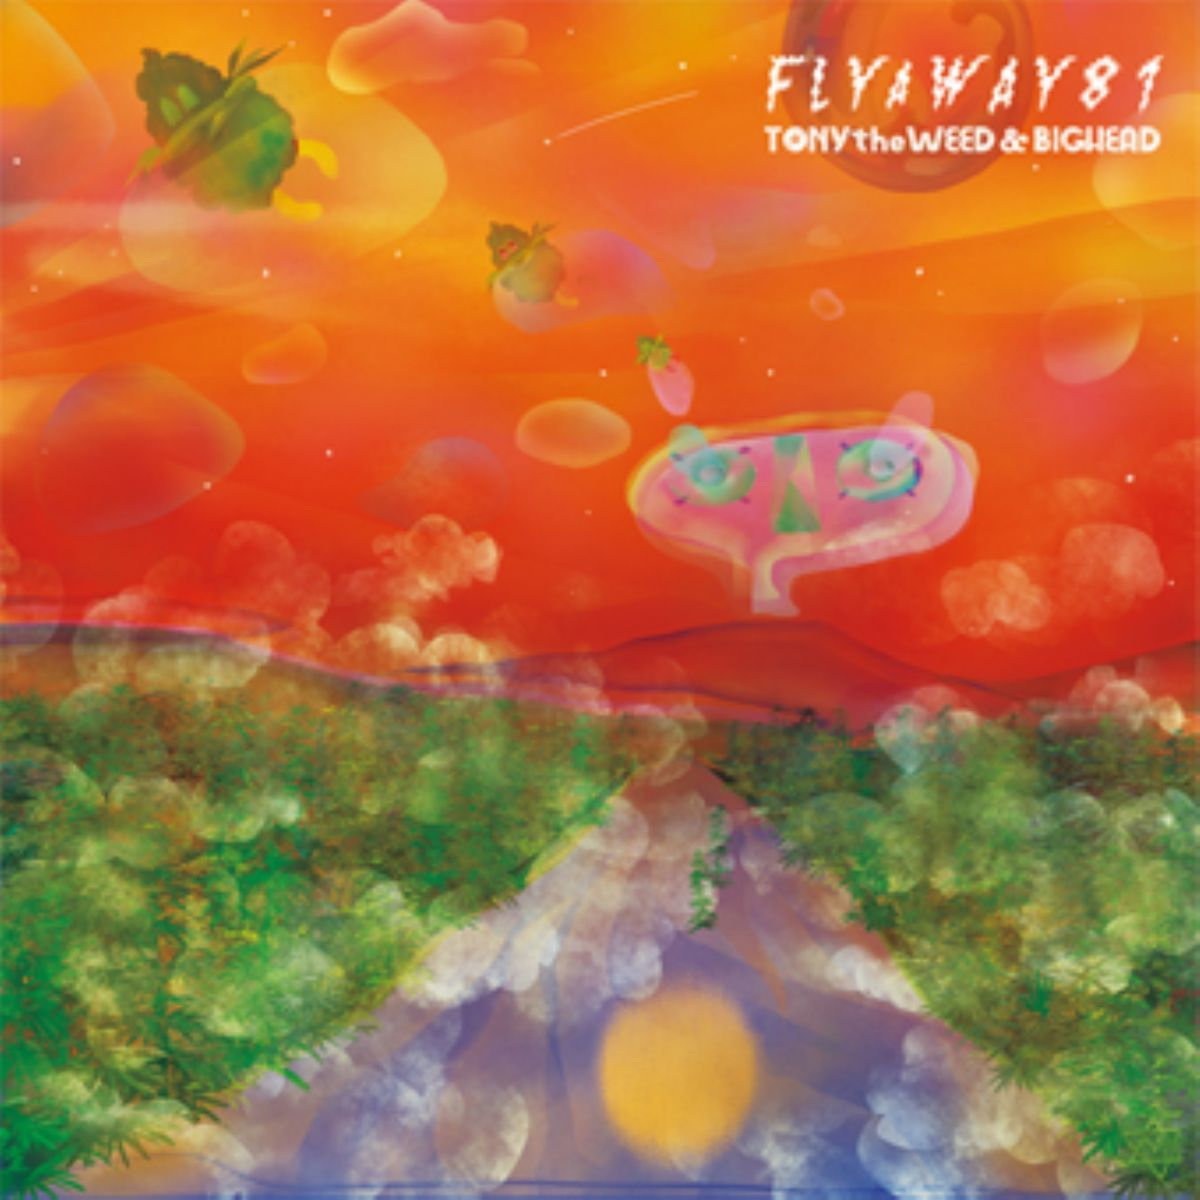 レゲエ ダブ アルバムFly A Way 81 / Tony The Weed & Big Head